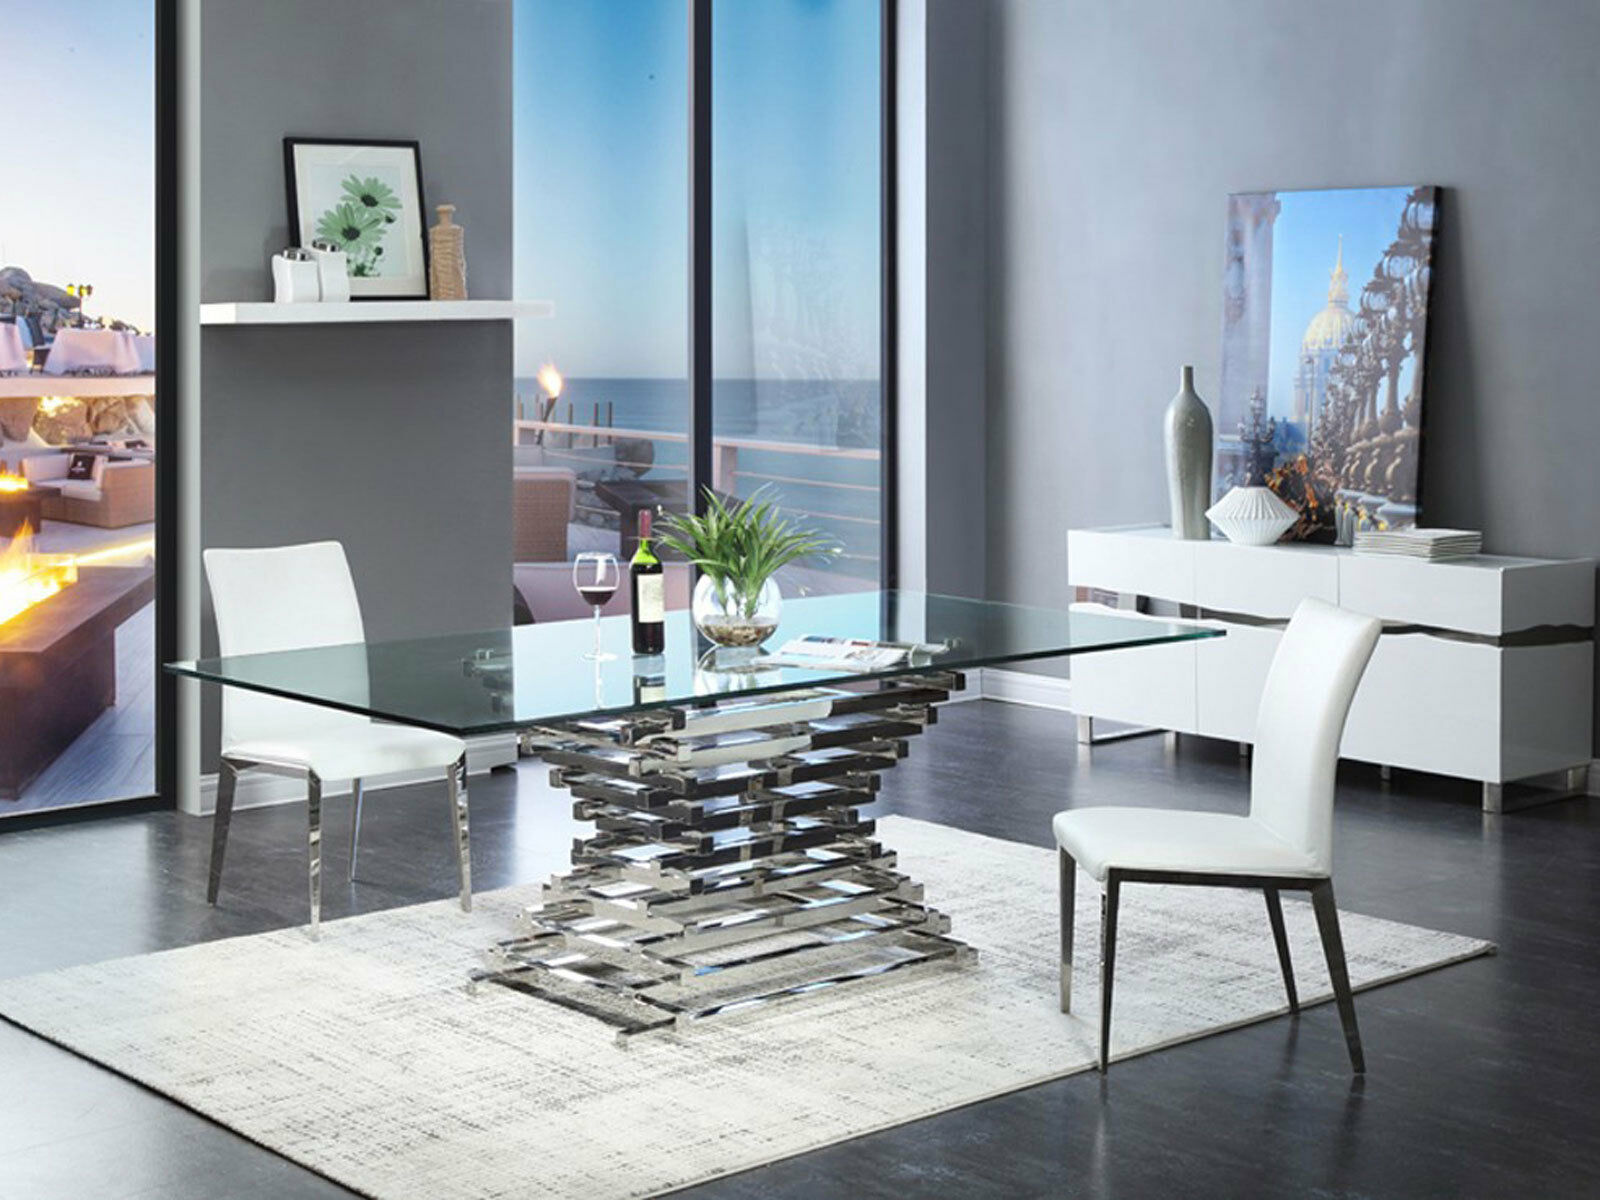 glass dining room table set arietta 7 piece modern dining room set rectangular glass top metal table chairs dining sets 746